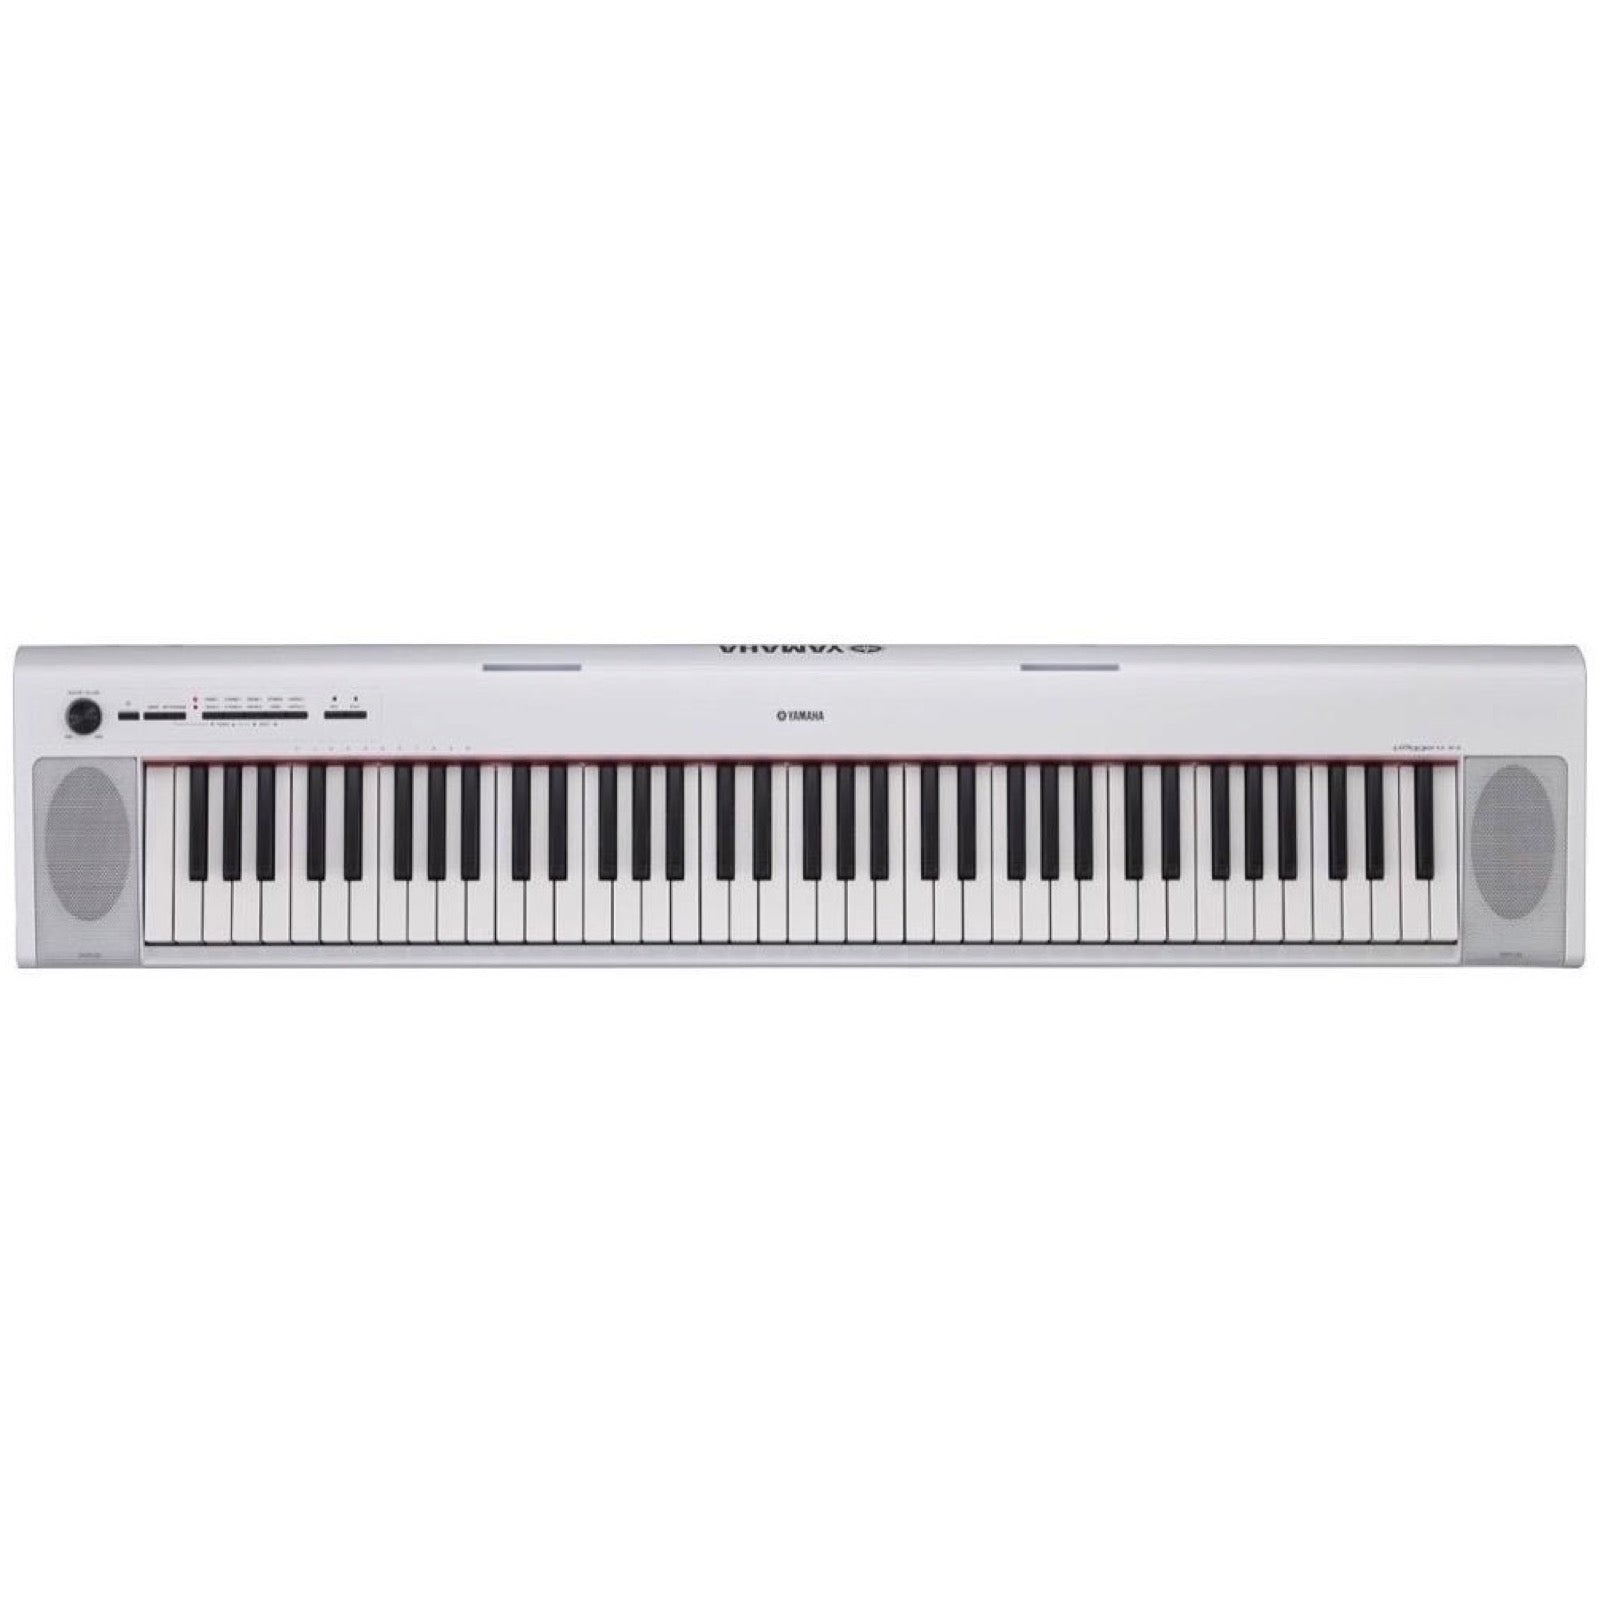 Yamaha NP32 Piaggero Portable Digital Piano, White